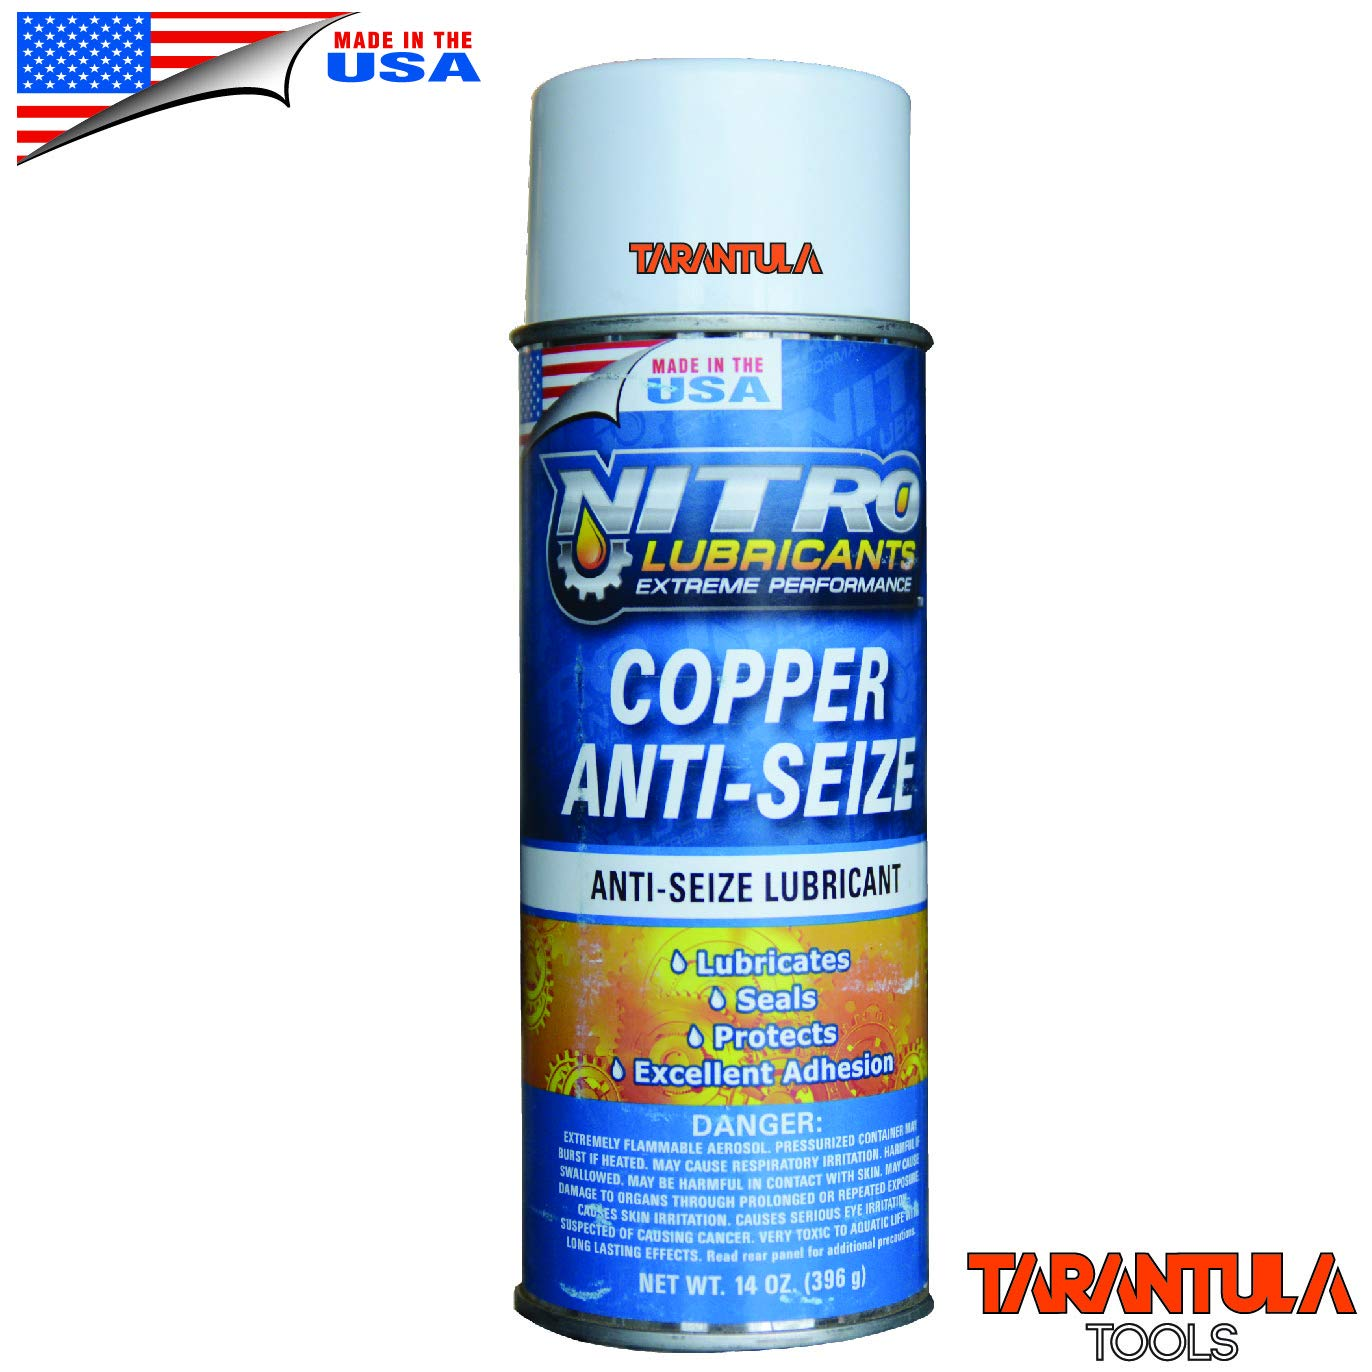 Nitro Lubricants Copper Spray Anti-Sieze - Copper Based Compound - Spray Lubricant - Great for Use On Spark Plug Threads, Brake Parts, Stainless Steel, Aluminum